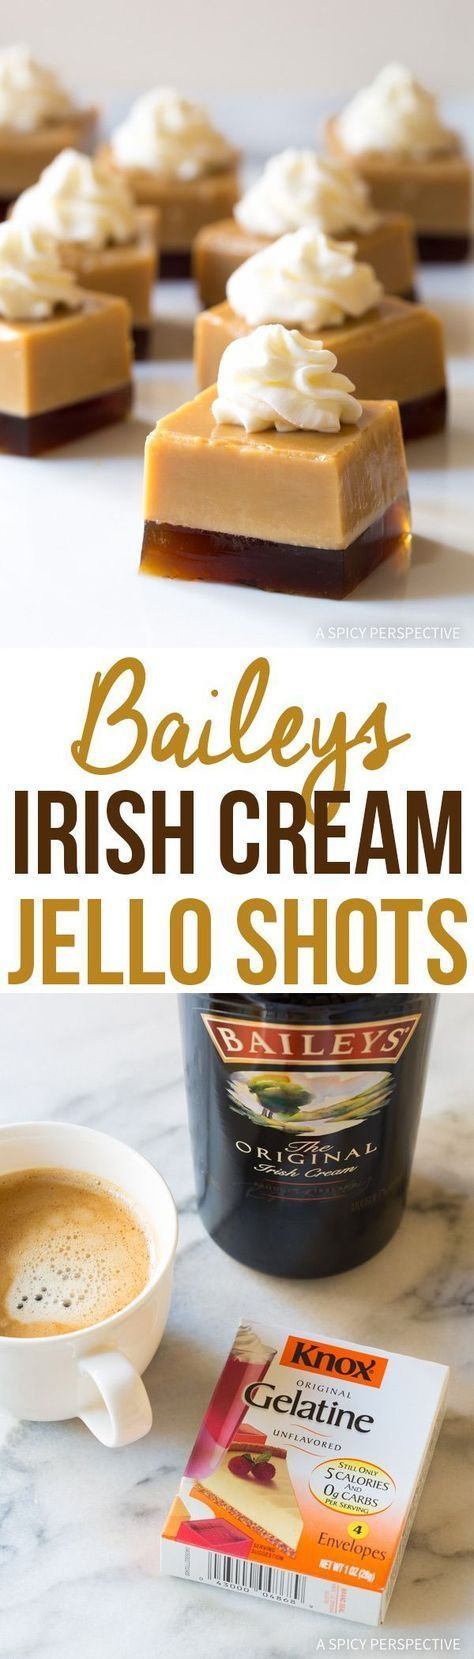 """5-Ingredient Baileys Irish Cream Jello Shots Recipe just in time for Saint Patrick's Day! These fun and festive """"grown-up treats"""" take no time to prep! Ingredients: 750 ml bottle Baileys Irish Cream liqueur 2 cups hot coffee or espresso 5 packets unflavored gelatin, divided 3 tablespoons granulated sugar Whipped cream Directions: Line a 9 XMore"""